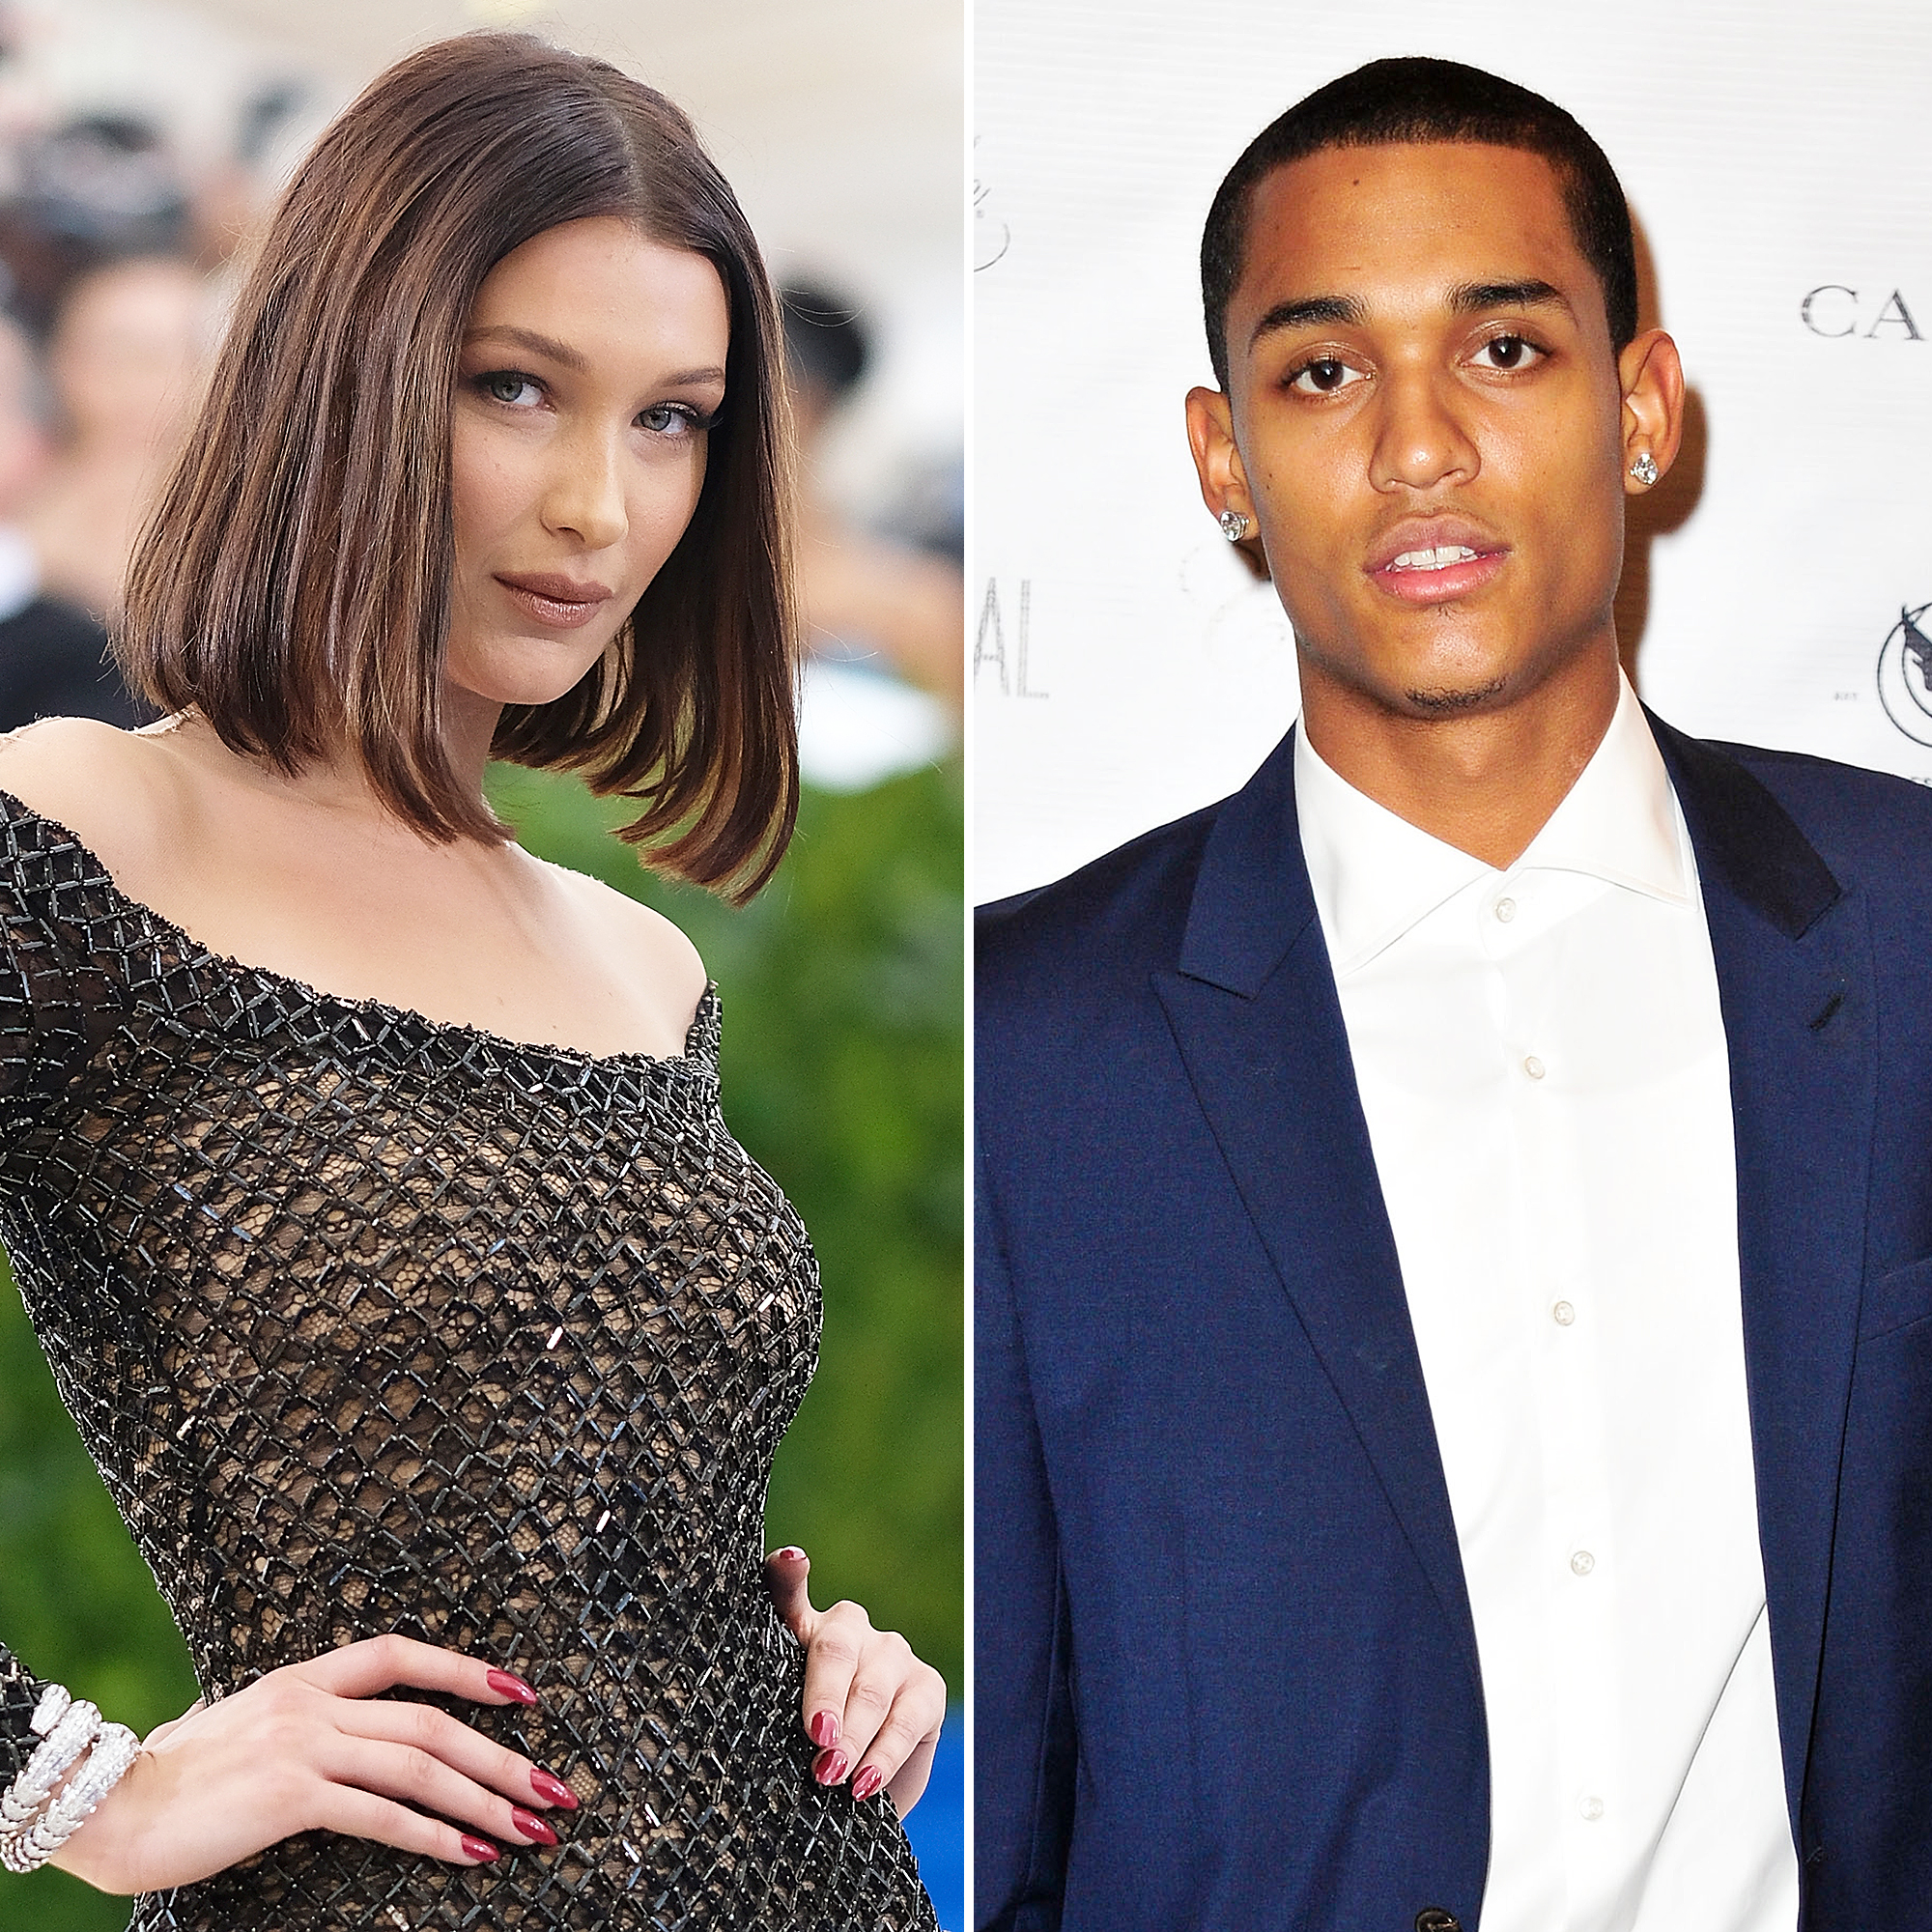 Is supermodel Bella Hadid dating National Basketball Association star Jordan Clarkson?